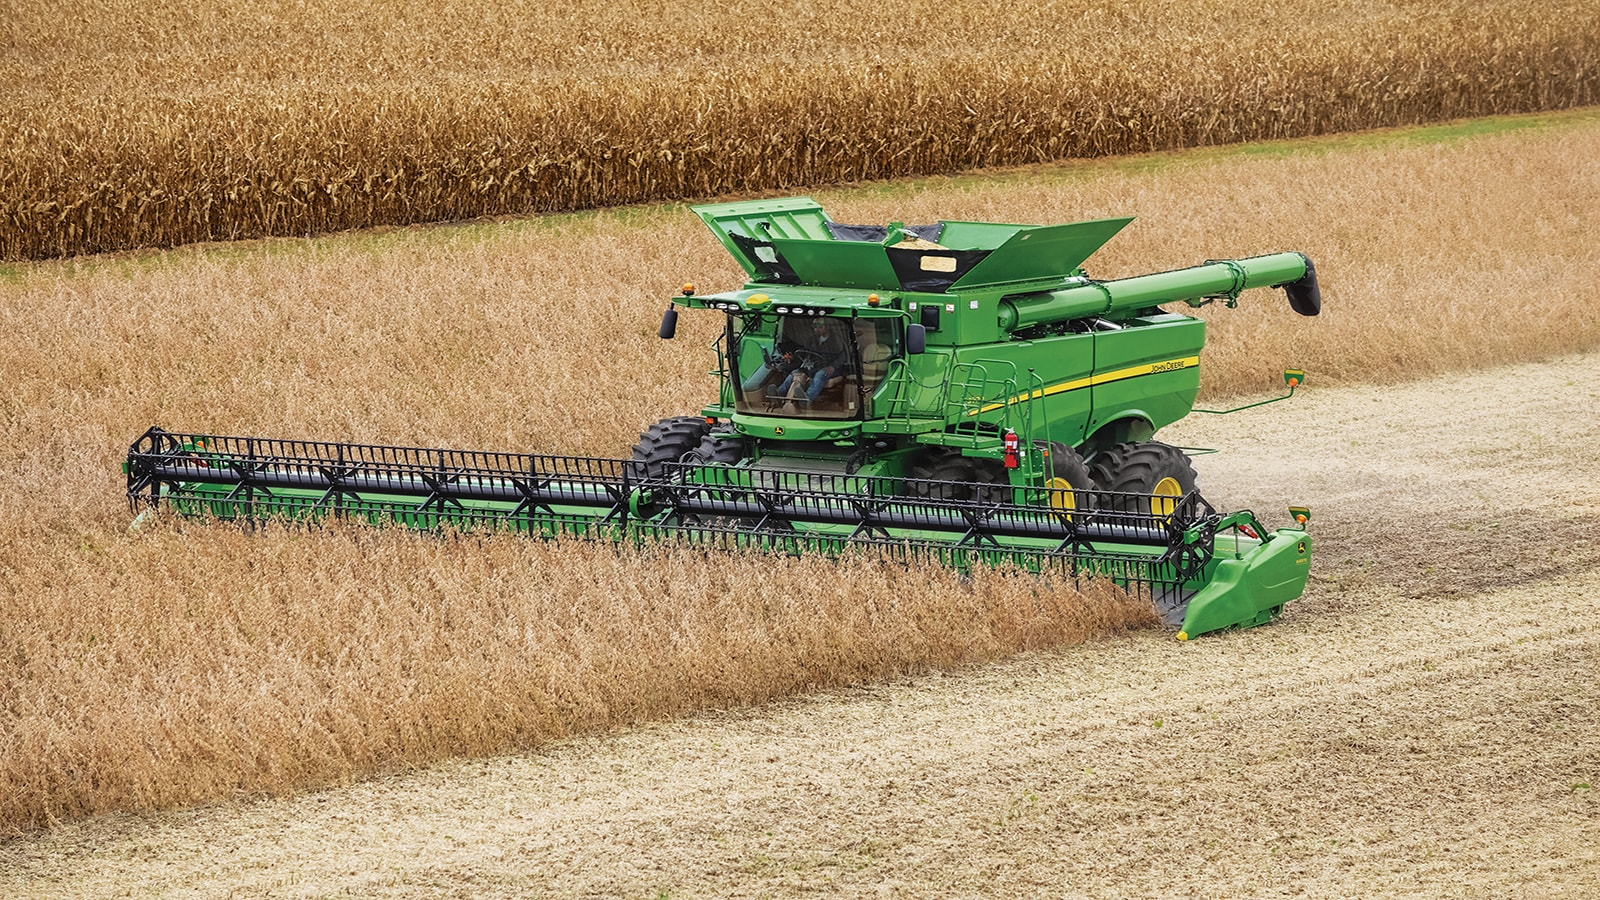 John Deere introduces its smarter S700 Combines for model year 2018 production.